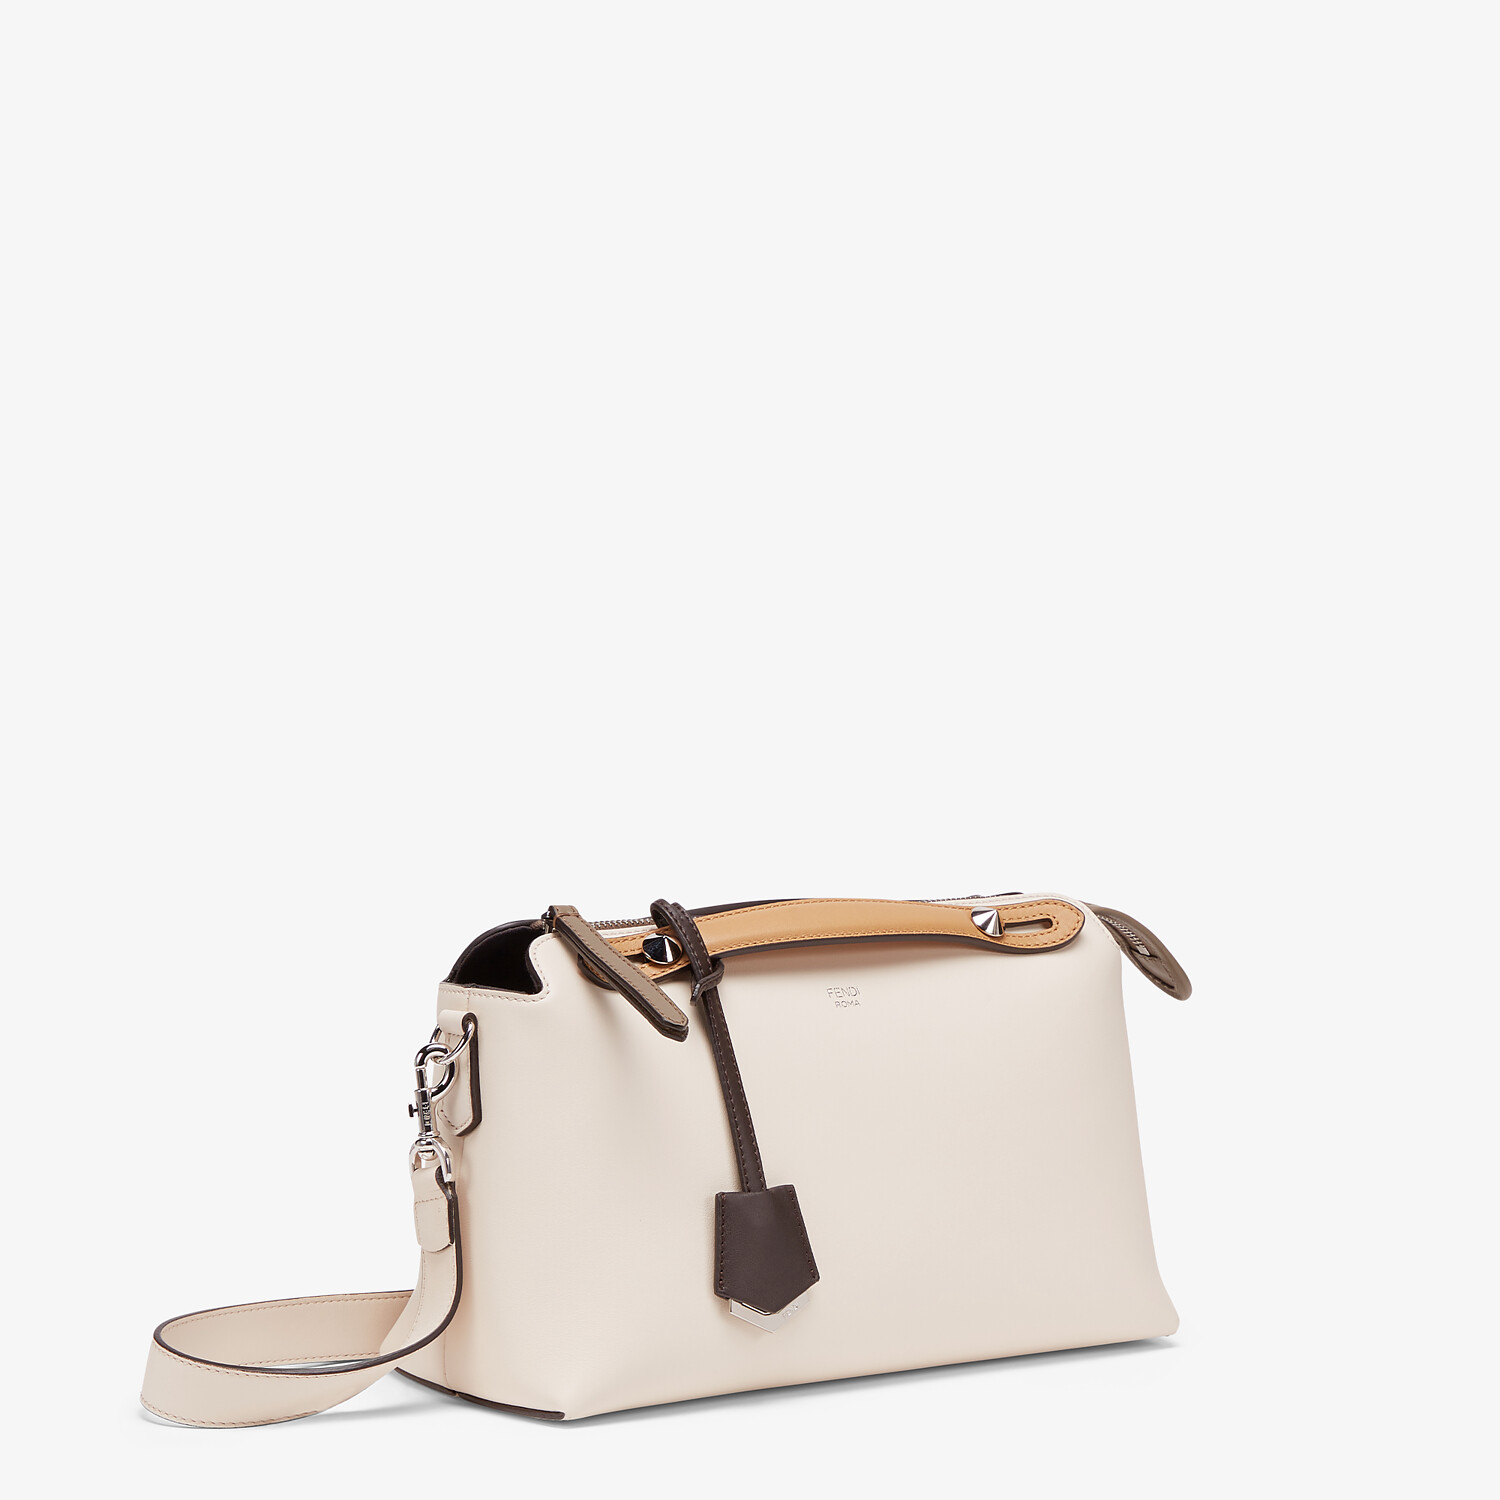 FENDI BY THE WAY MEDIUM - Multicolor leather Boston bag - view 2 detail